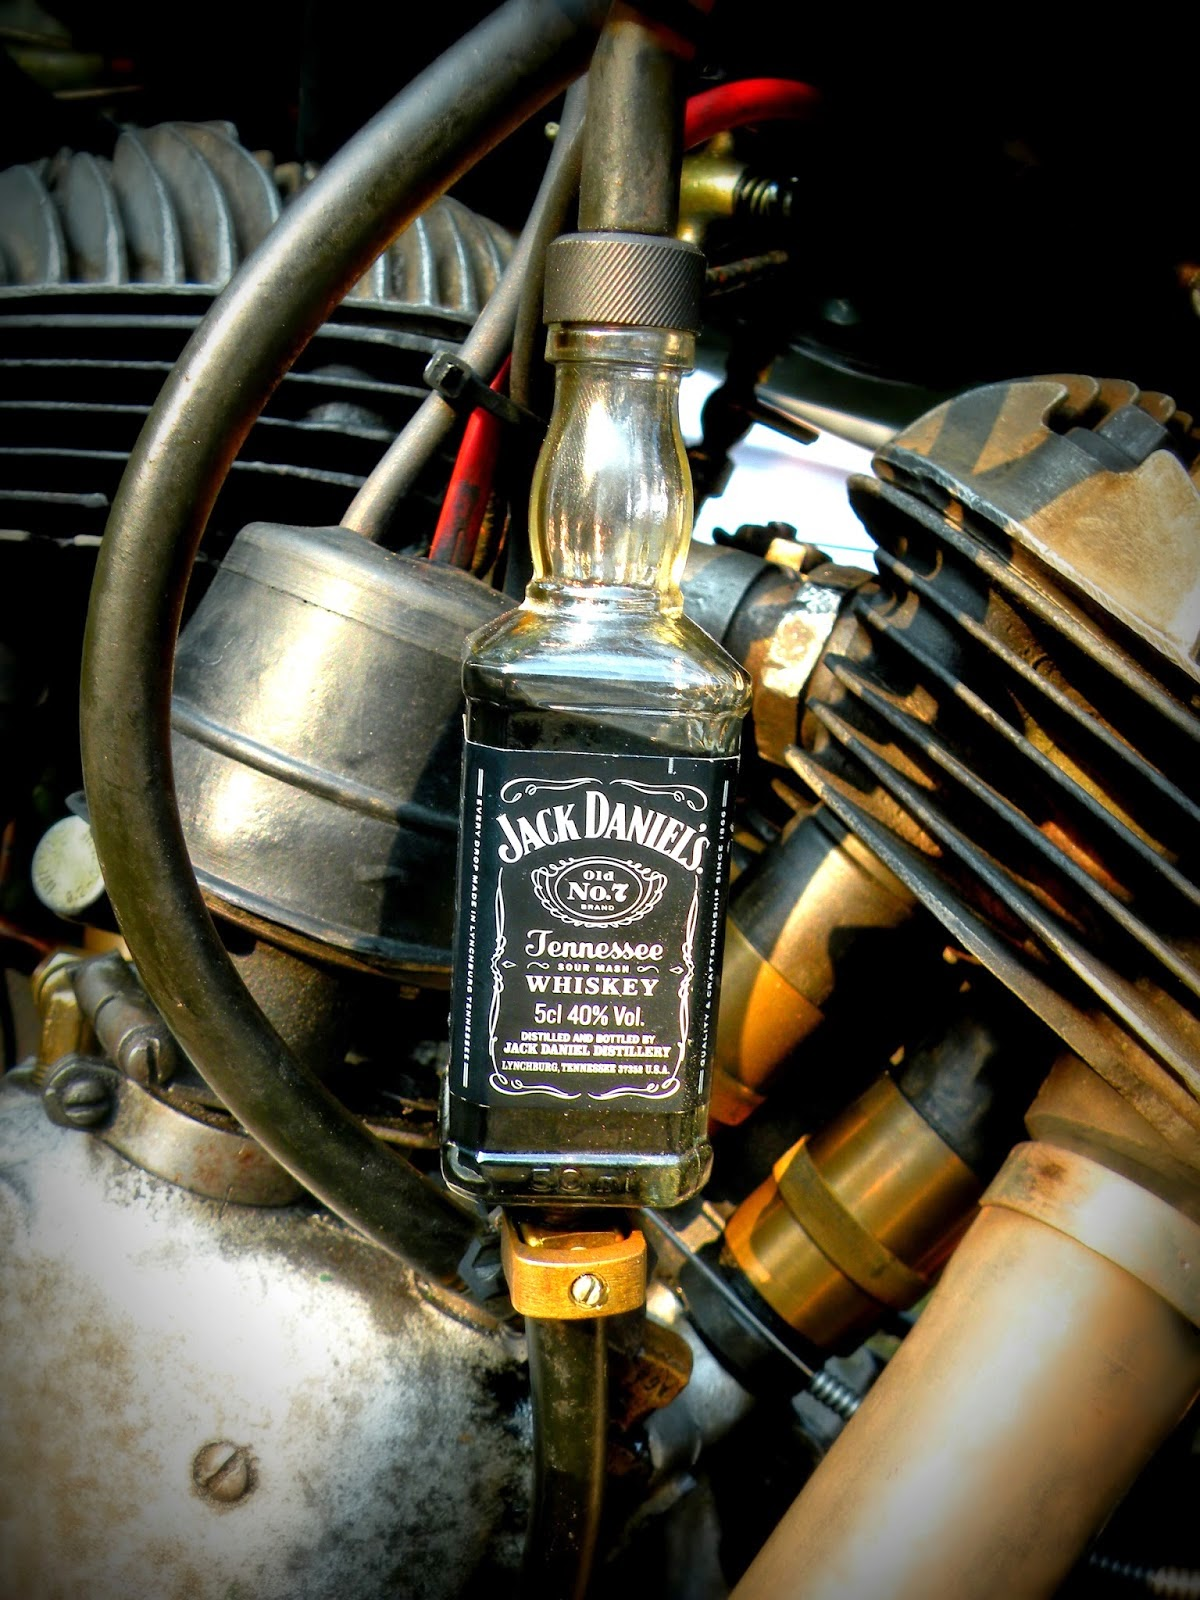 Jack daniels oil filter fuel filter jack daniels motorcycle oil filter motorcycle fuel filter